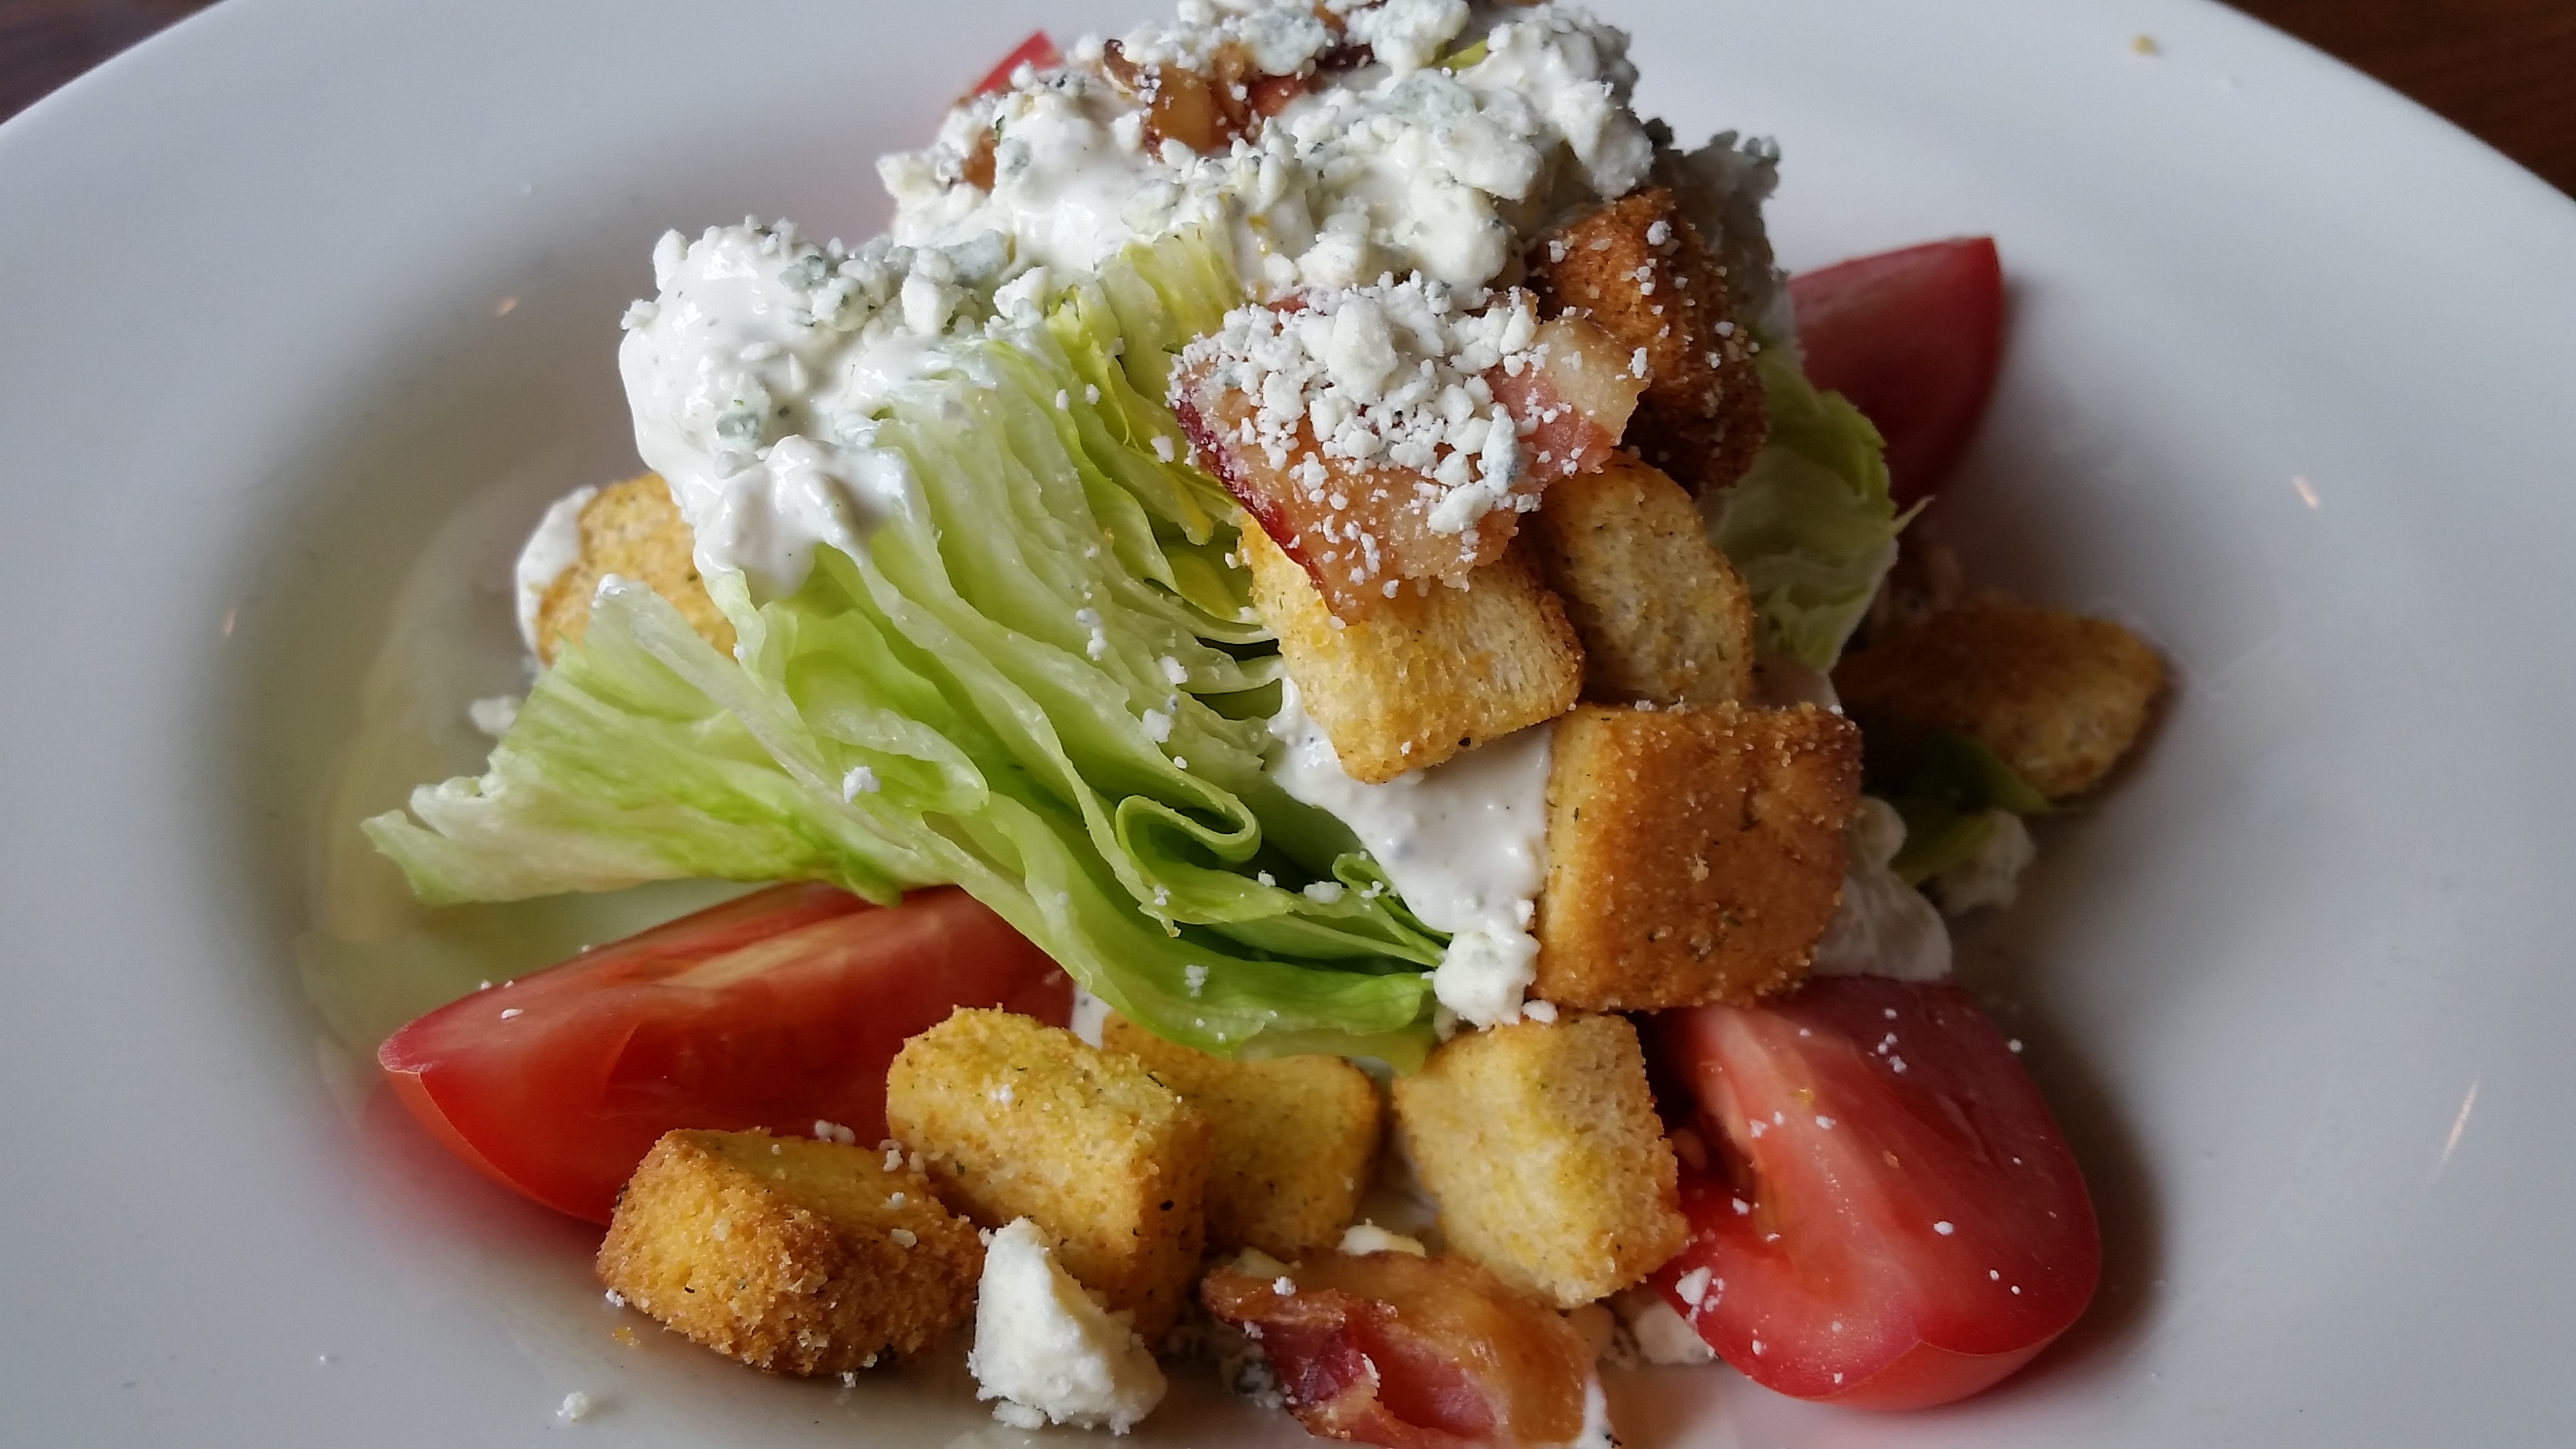 Wedge salad with lettuce, bacon, tomatoes and bleu cheese dressing and croutons at Wintergreen Resort The Edge